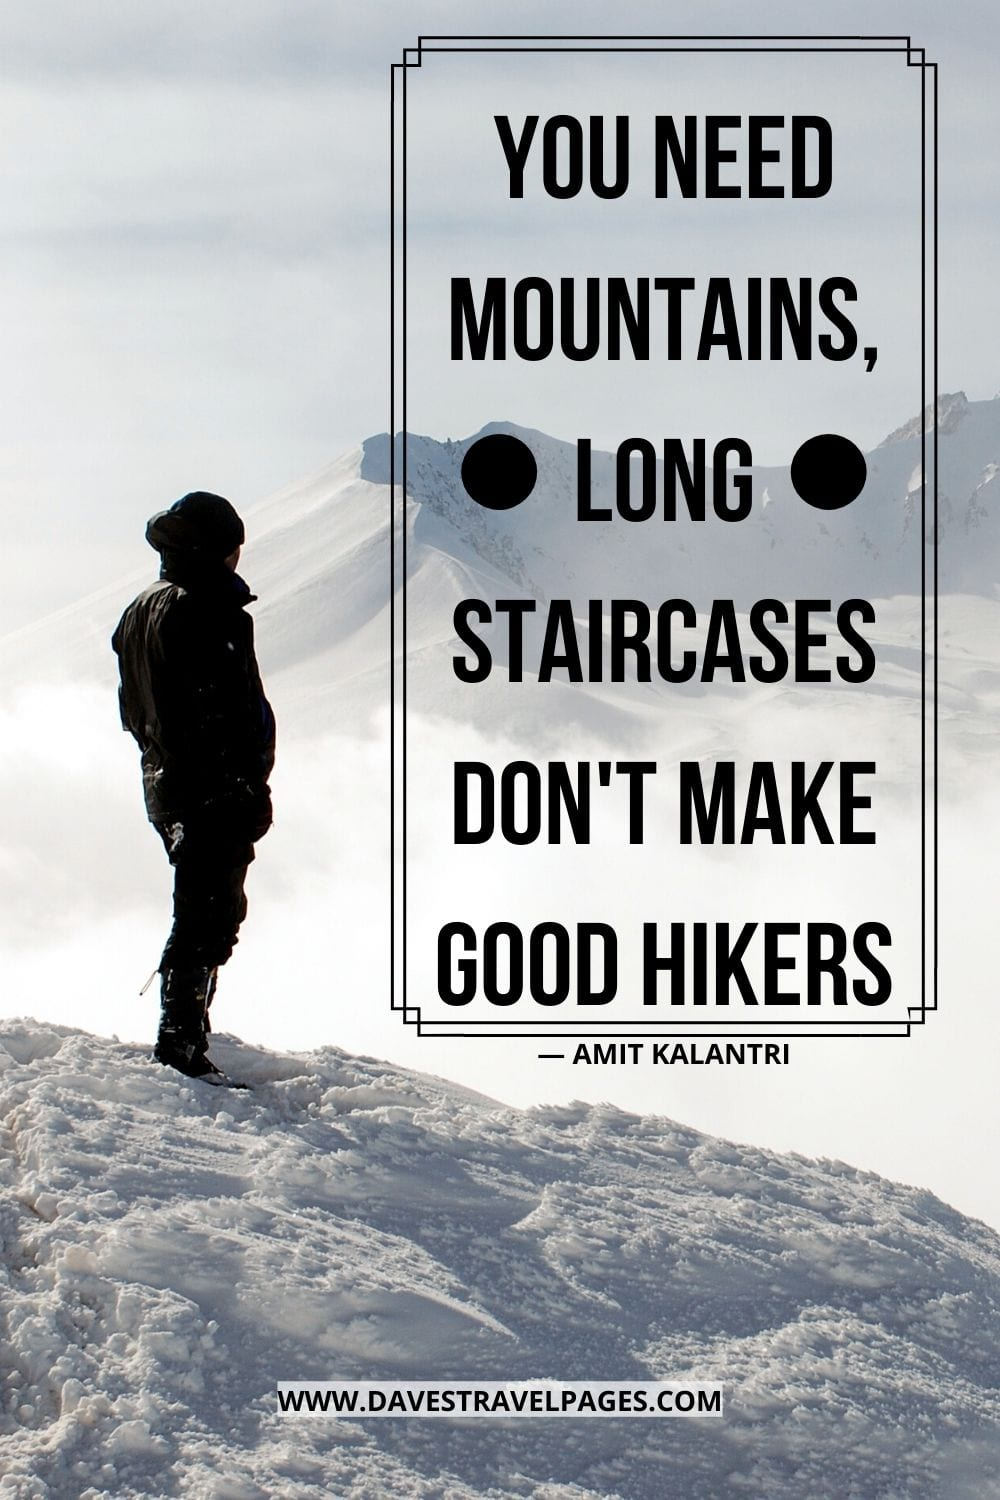 Trekking Quotes - You need mountains, long staircases don't make good hikers ― Amit Kalantri